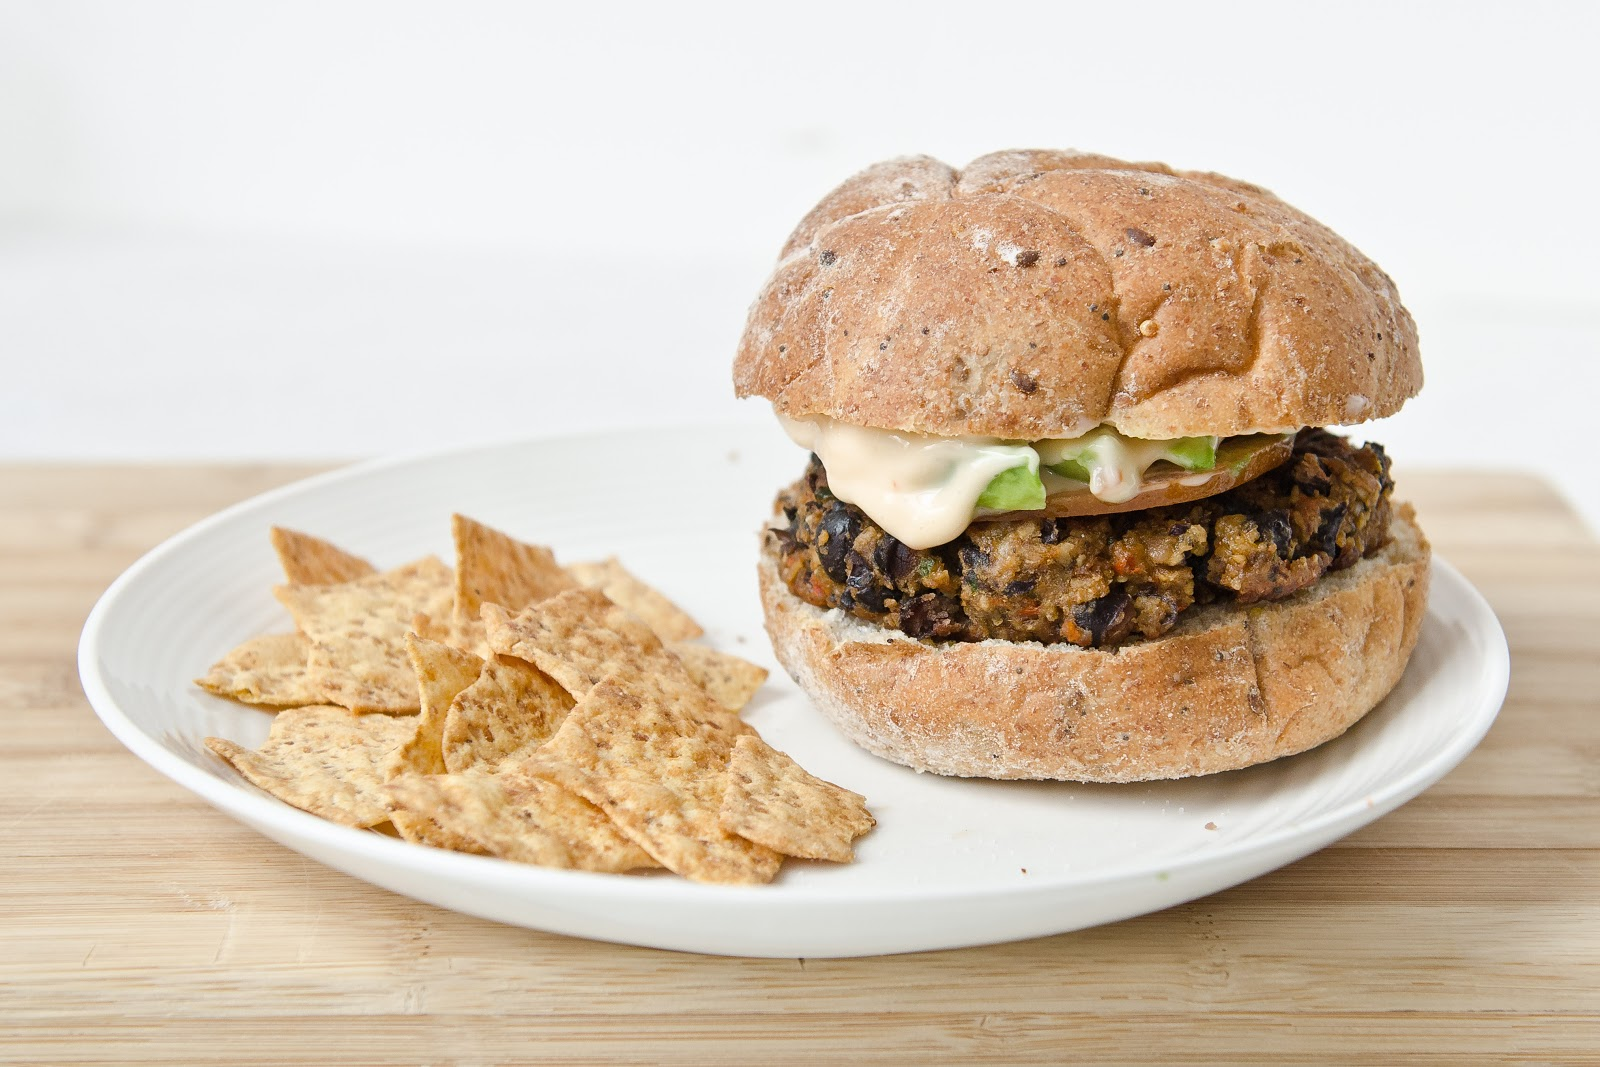 financial ratios and veggie burger Find company research, competitor information, contact details & financial data for subway restaurant inc get the latest business insights from d&b hoovers.